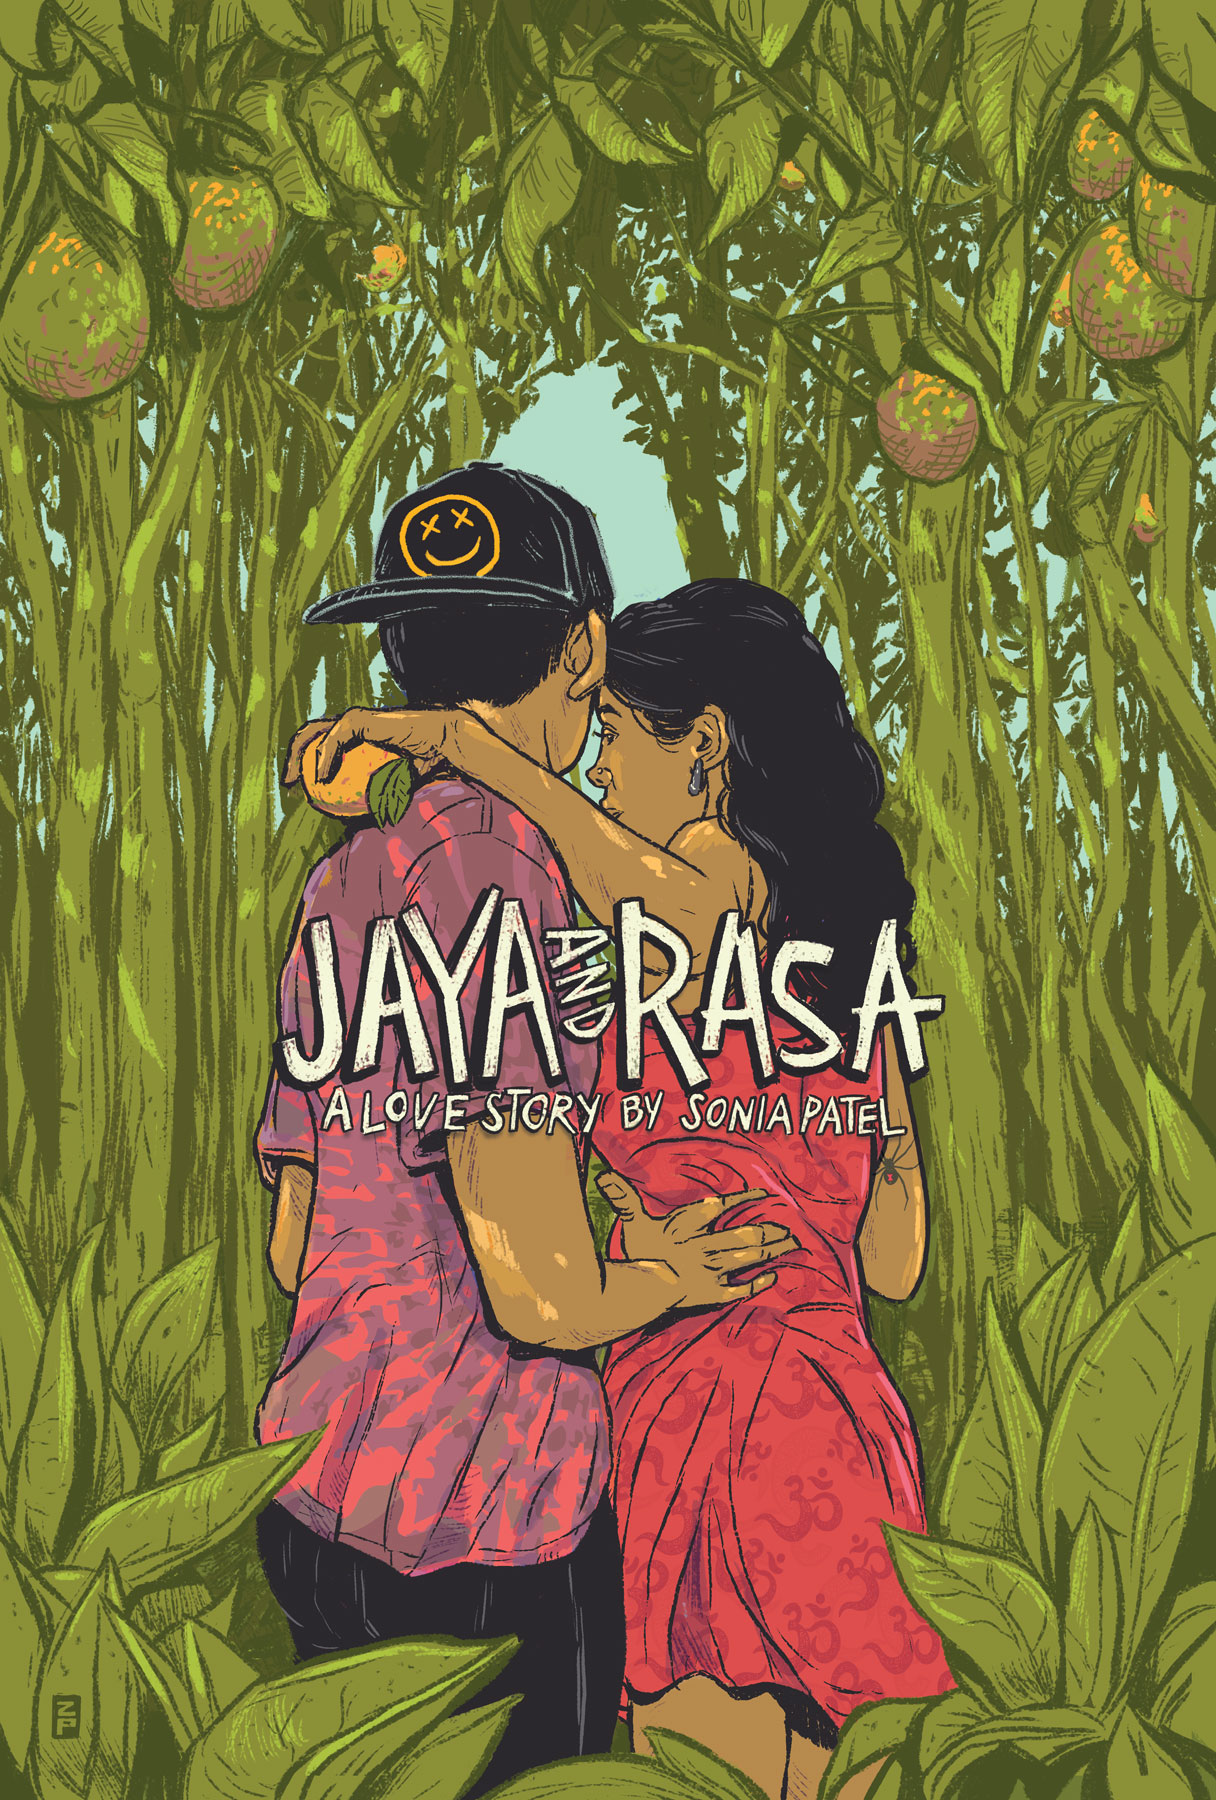 The characters of Jaya & Rasa are amalgams of some diverse LGBTQ teens I've treated, ones facing horrific situations (sex trafficked, physically/emotionally/sexually abused, bullied, and/or suffering from untreated mental health issues including suicidal thoughts and attempts). I'm grateful my version of their struggles and triumphs has been included on the 2019 In the Margins Recommended Fiction Book List! -